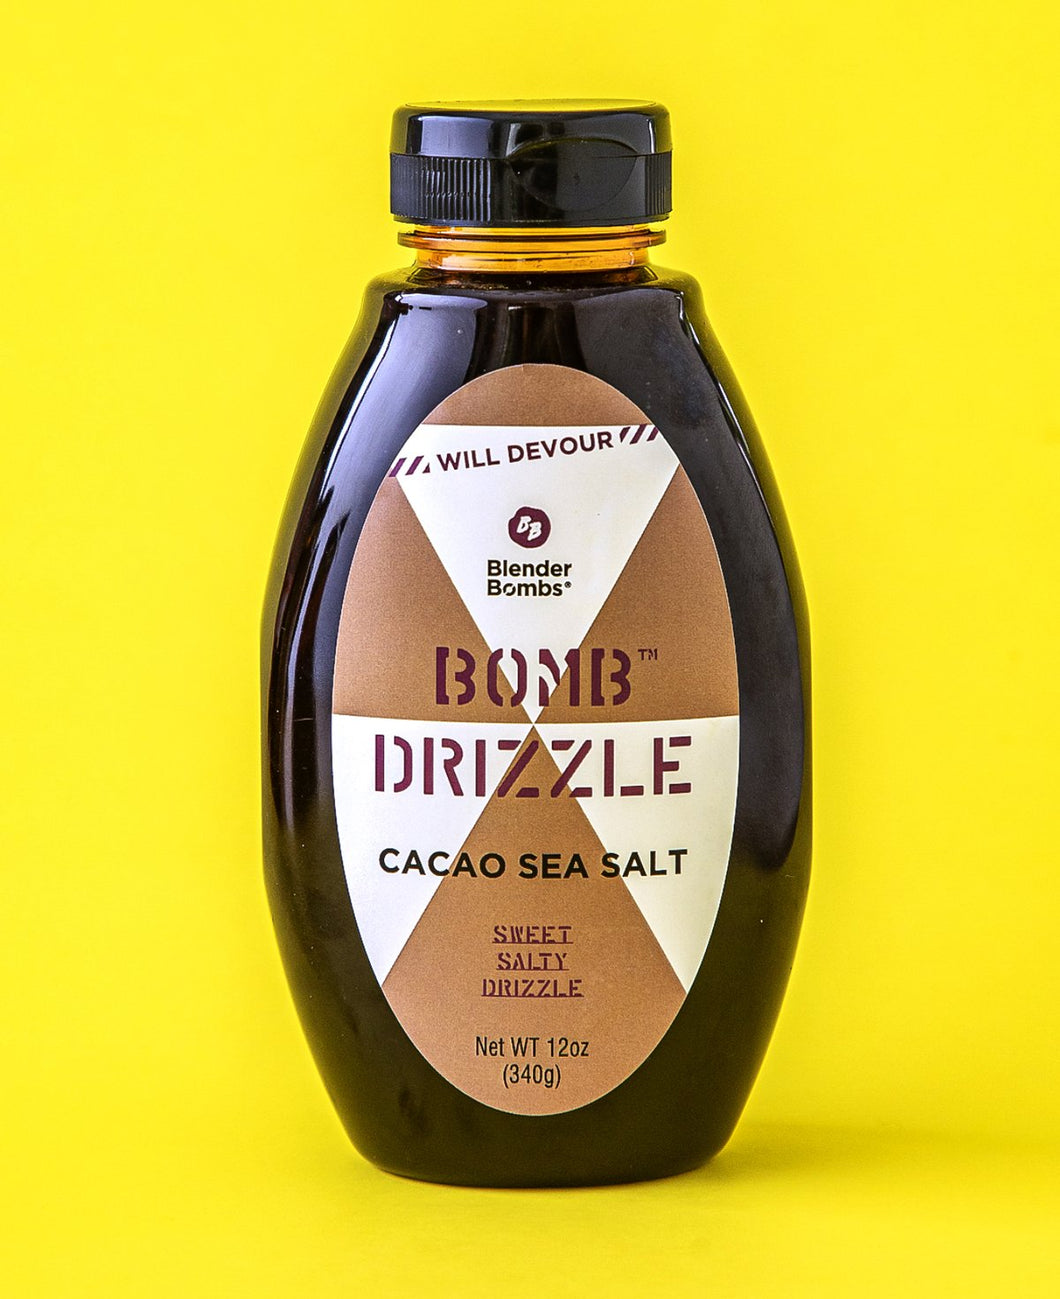 Bomb Drizzle Cacao Sea Salt